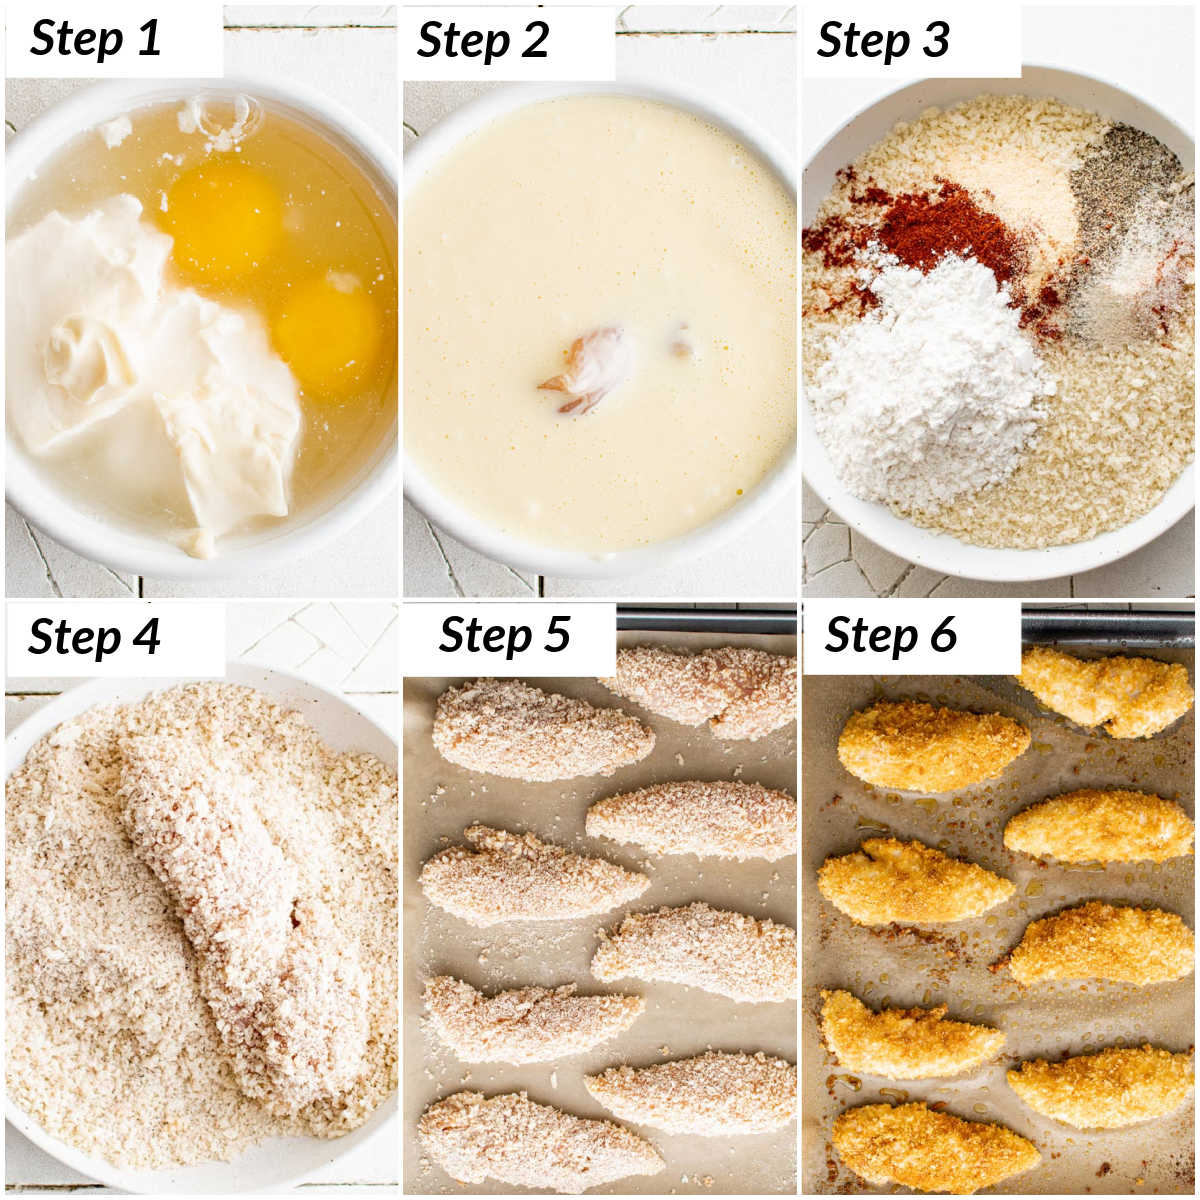 image collage showing the steps for making baked chicken tenders in oven